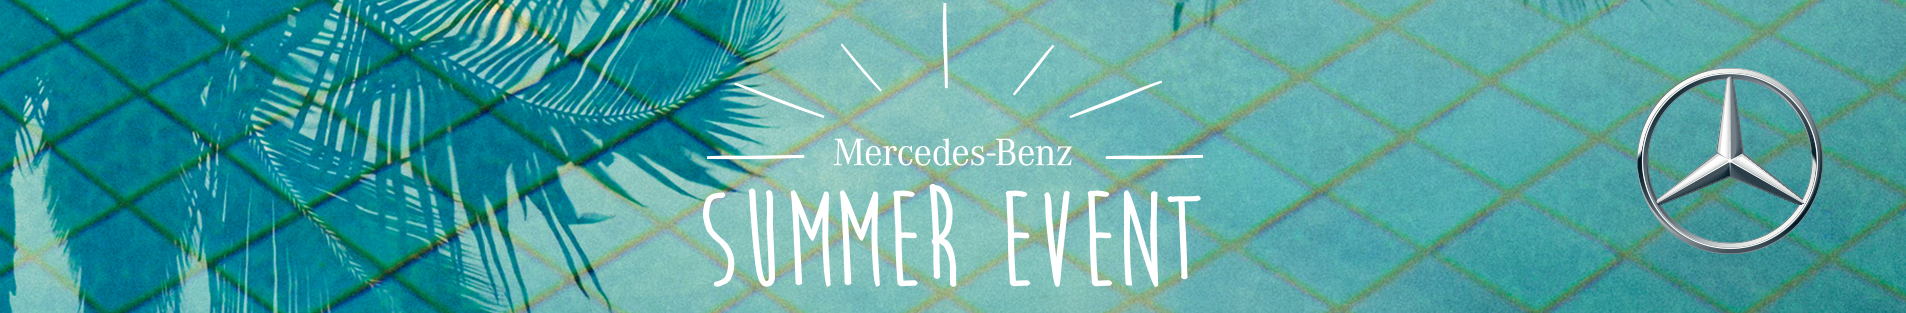 Mercedes Benz Summer Event